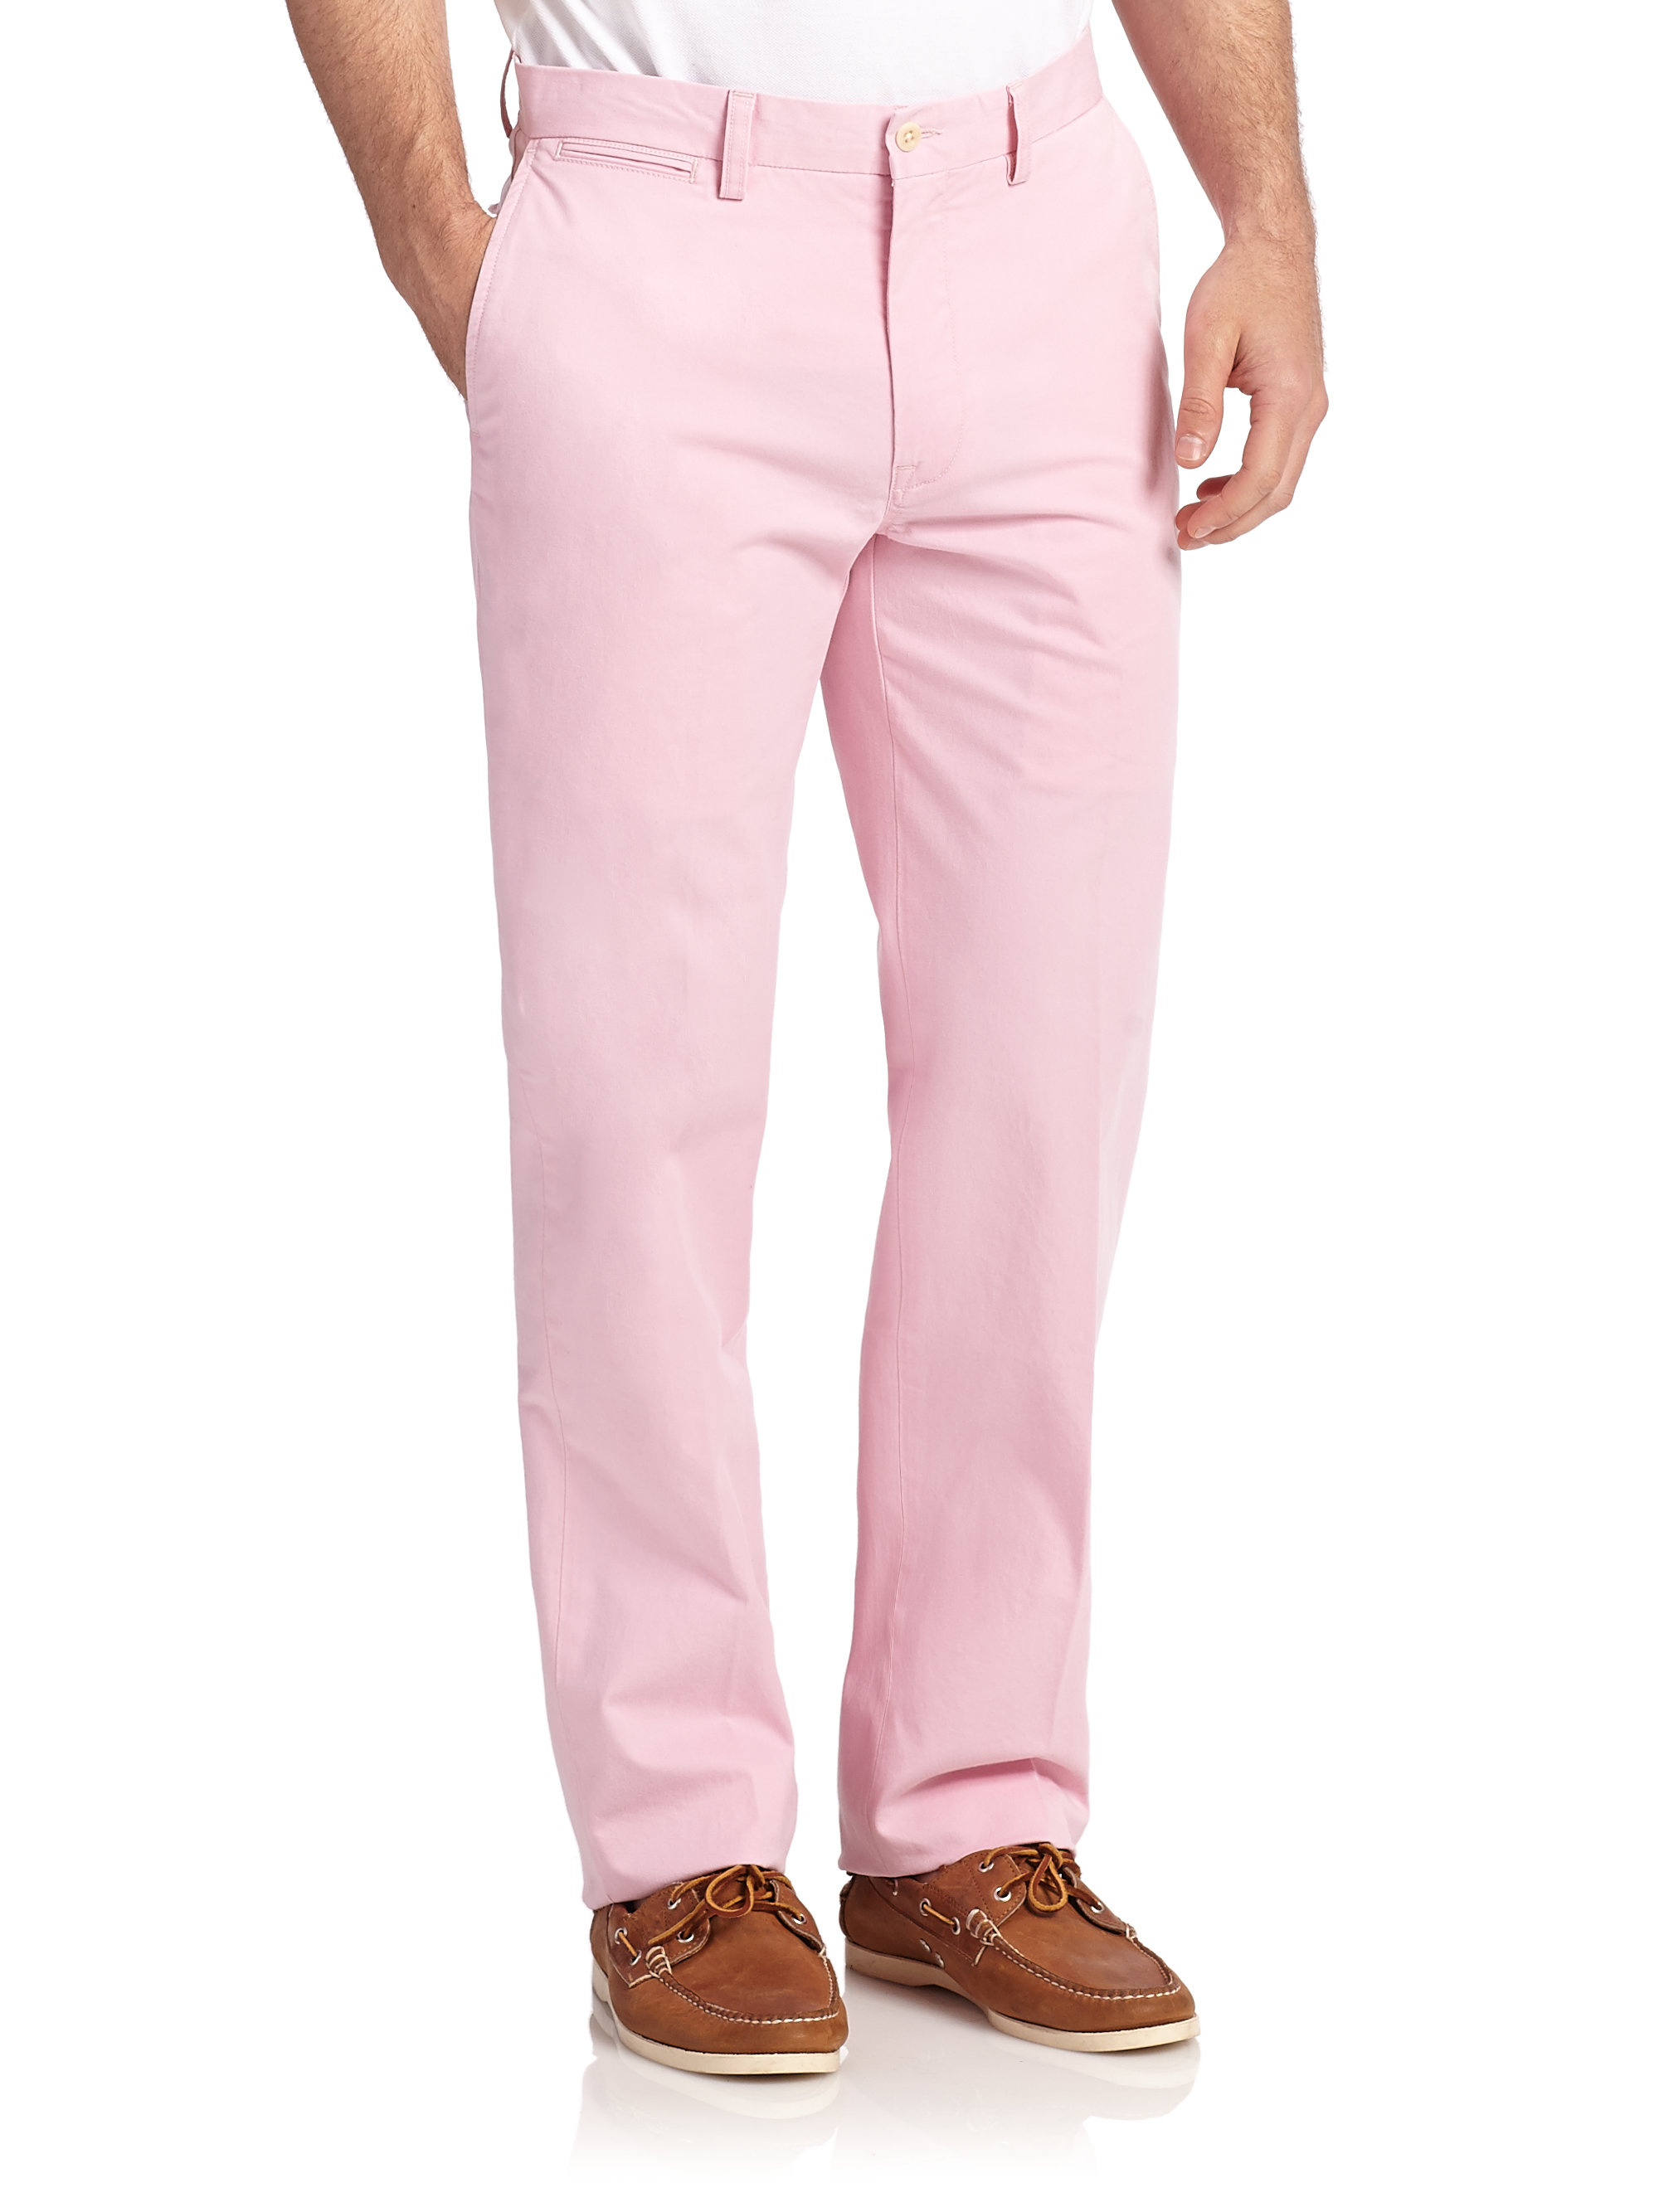 Buy River Island Men's Pink Slim Chino Pants. Similar products also available. SALE now on!Price: $